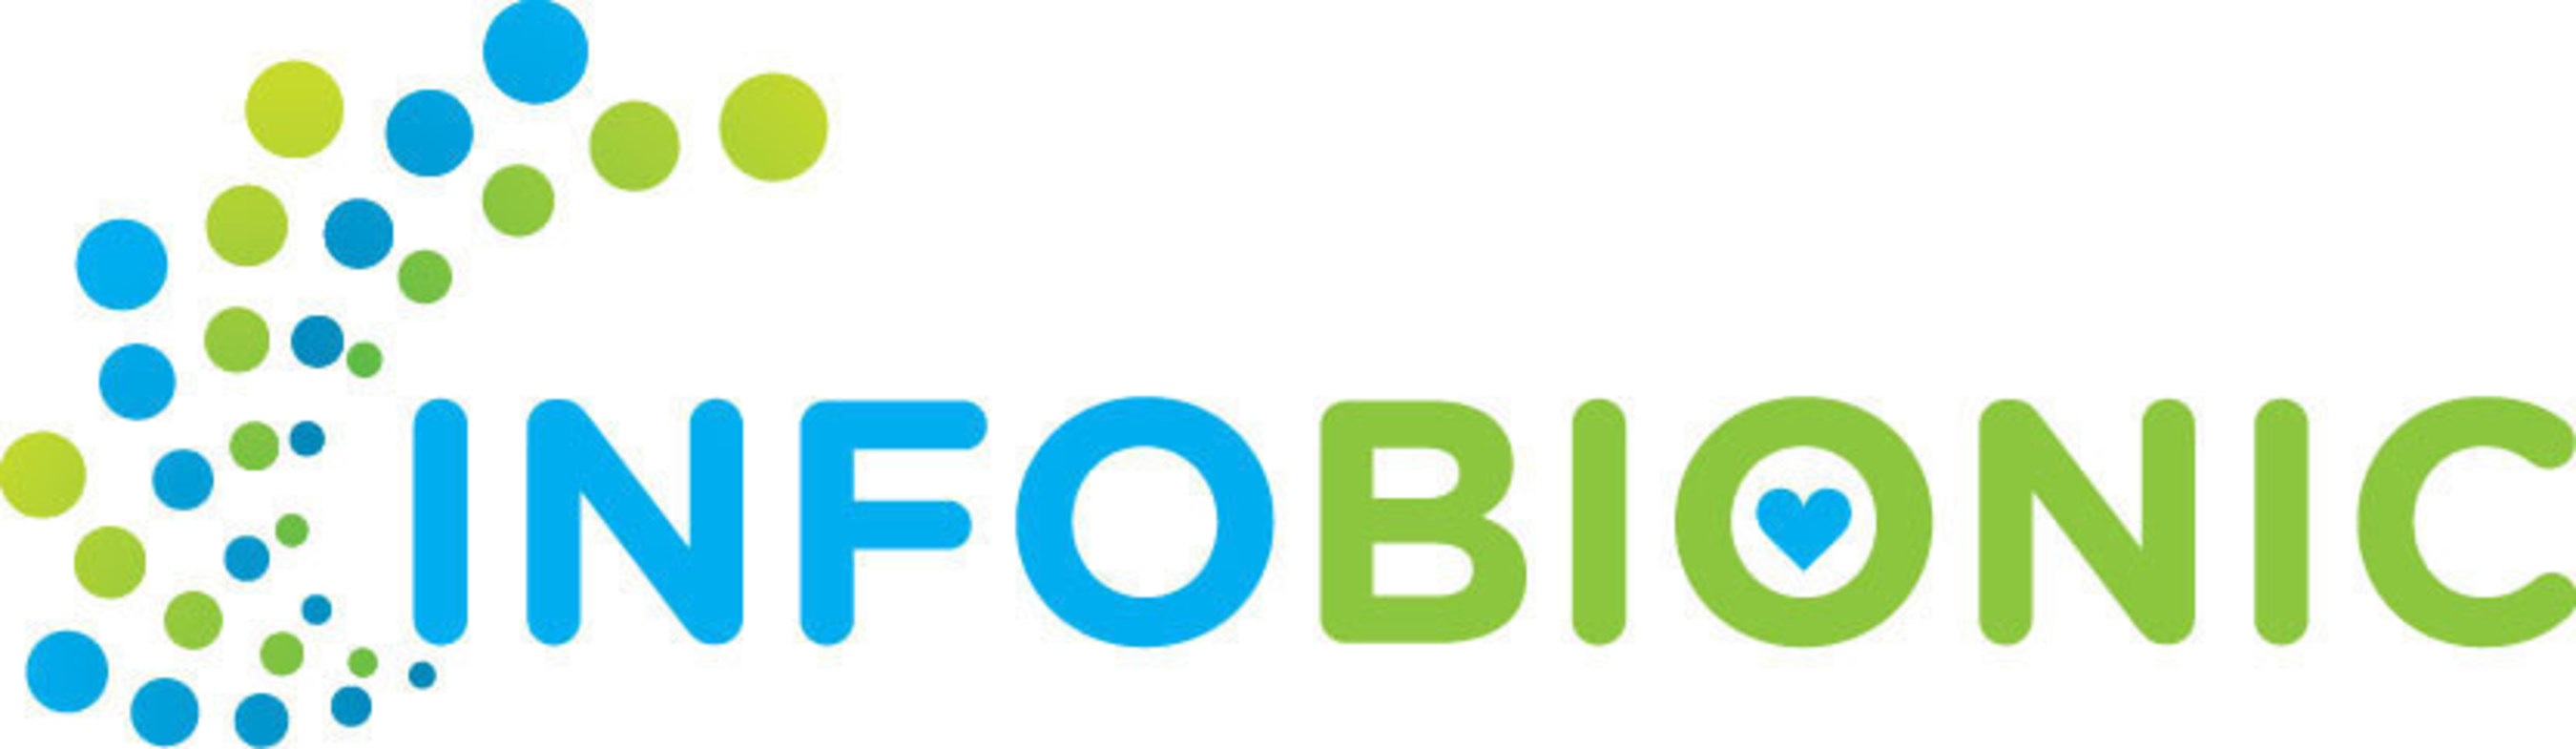 InfoBionic is an emerging digital health company focused on creating superior patient monitoring solutions for chronic disease management with an initial market focus on cardiac arrhythmias.